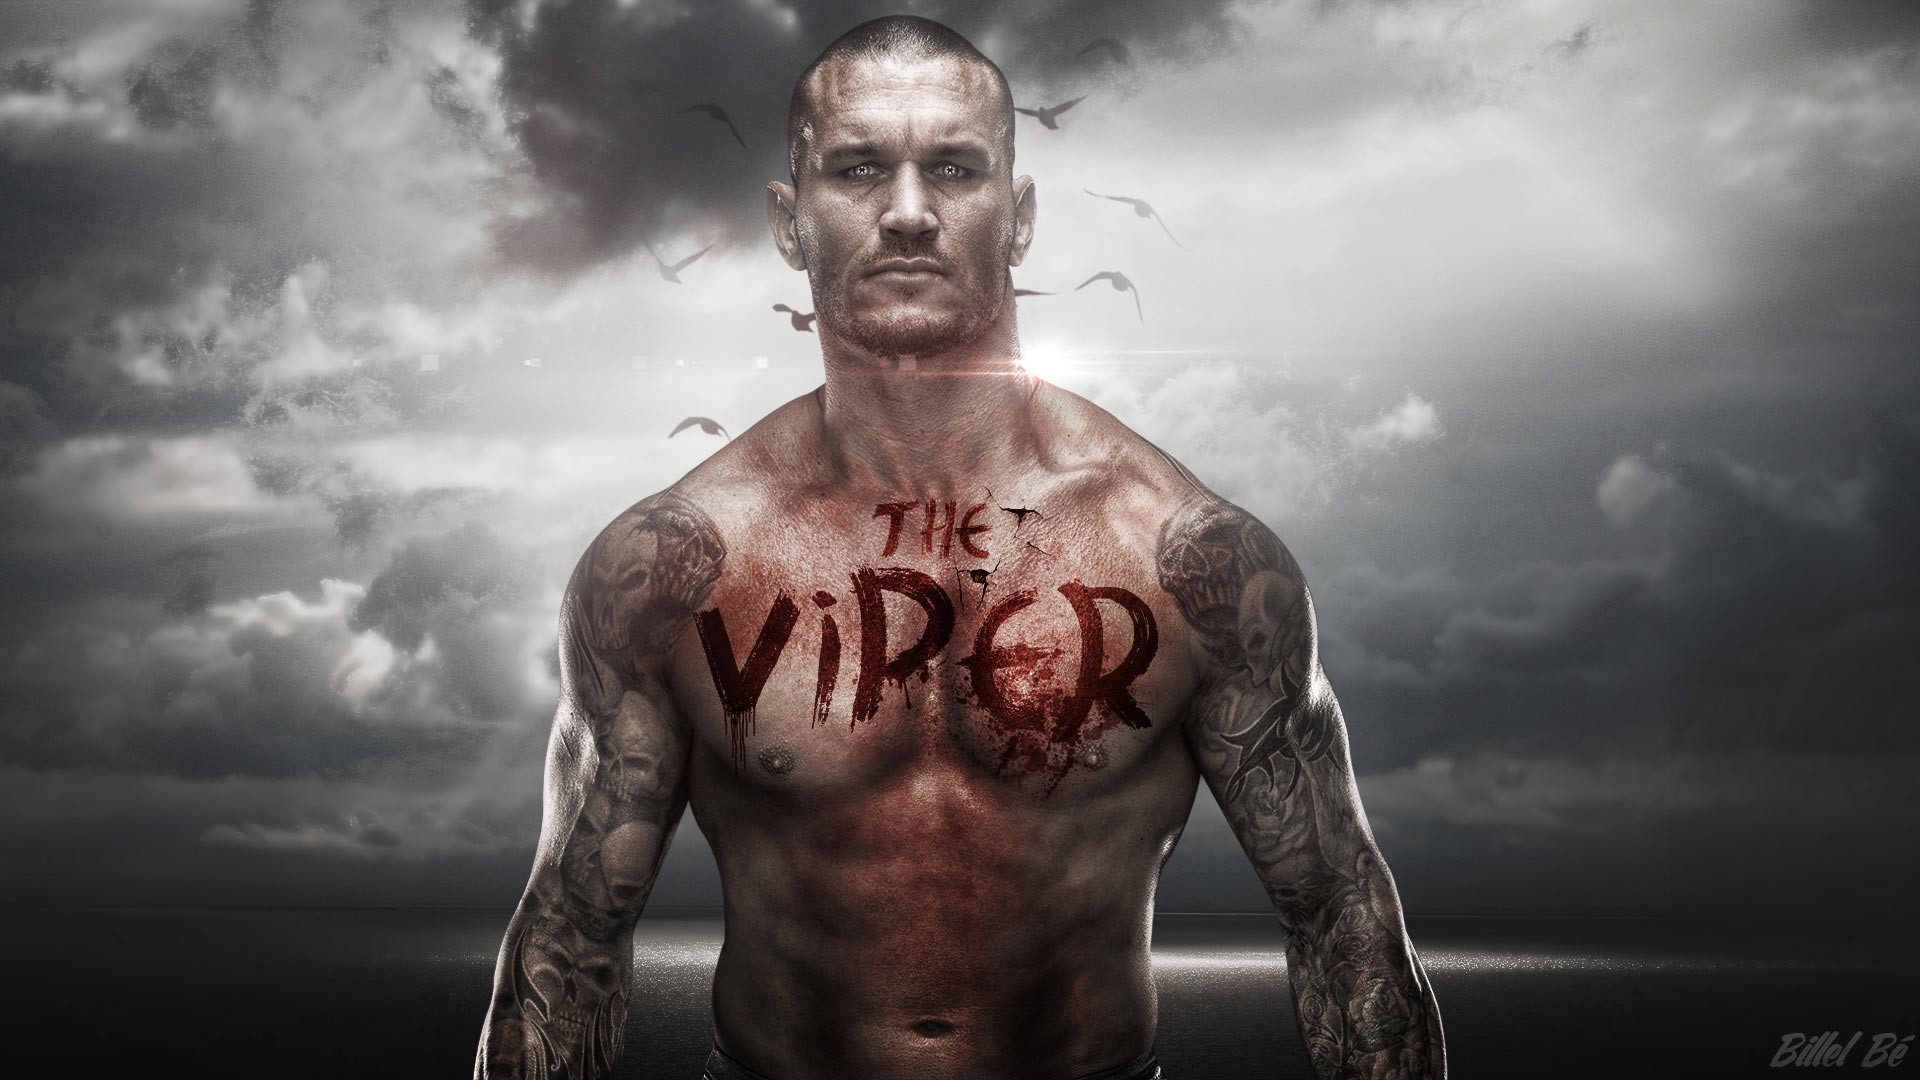 1920x1080 Great typographic art of the RKO and the Viper himself in this deadly theme  for the wrestler.